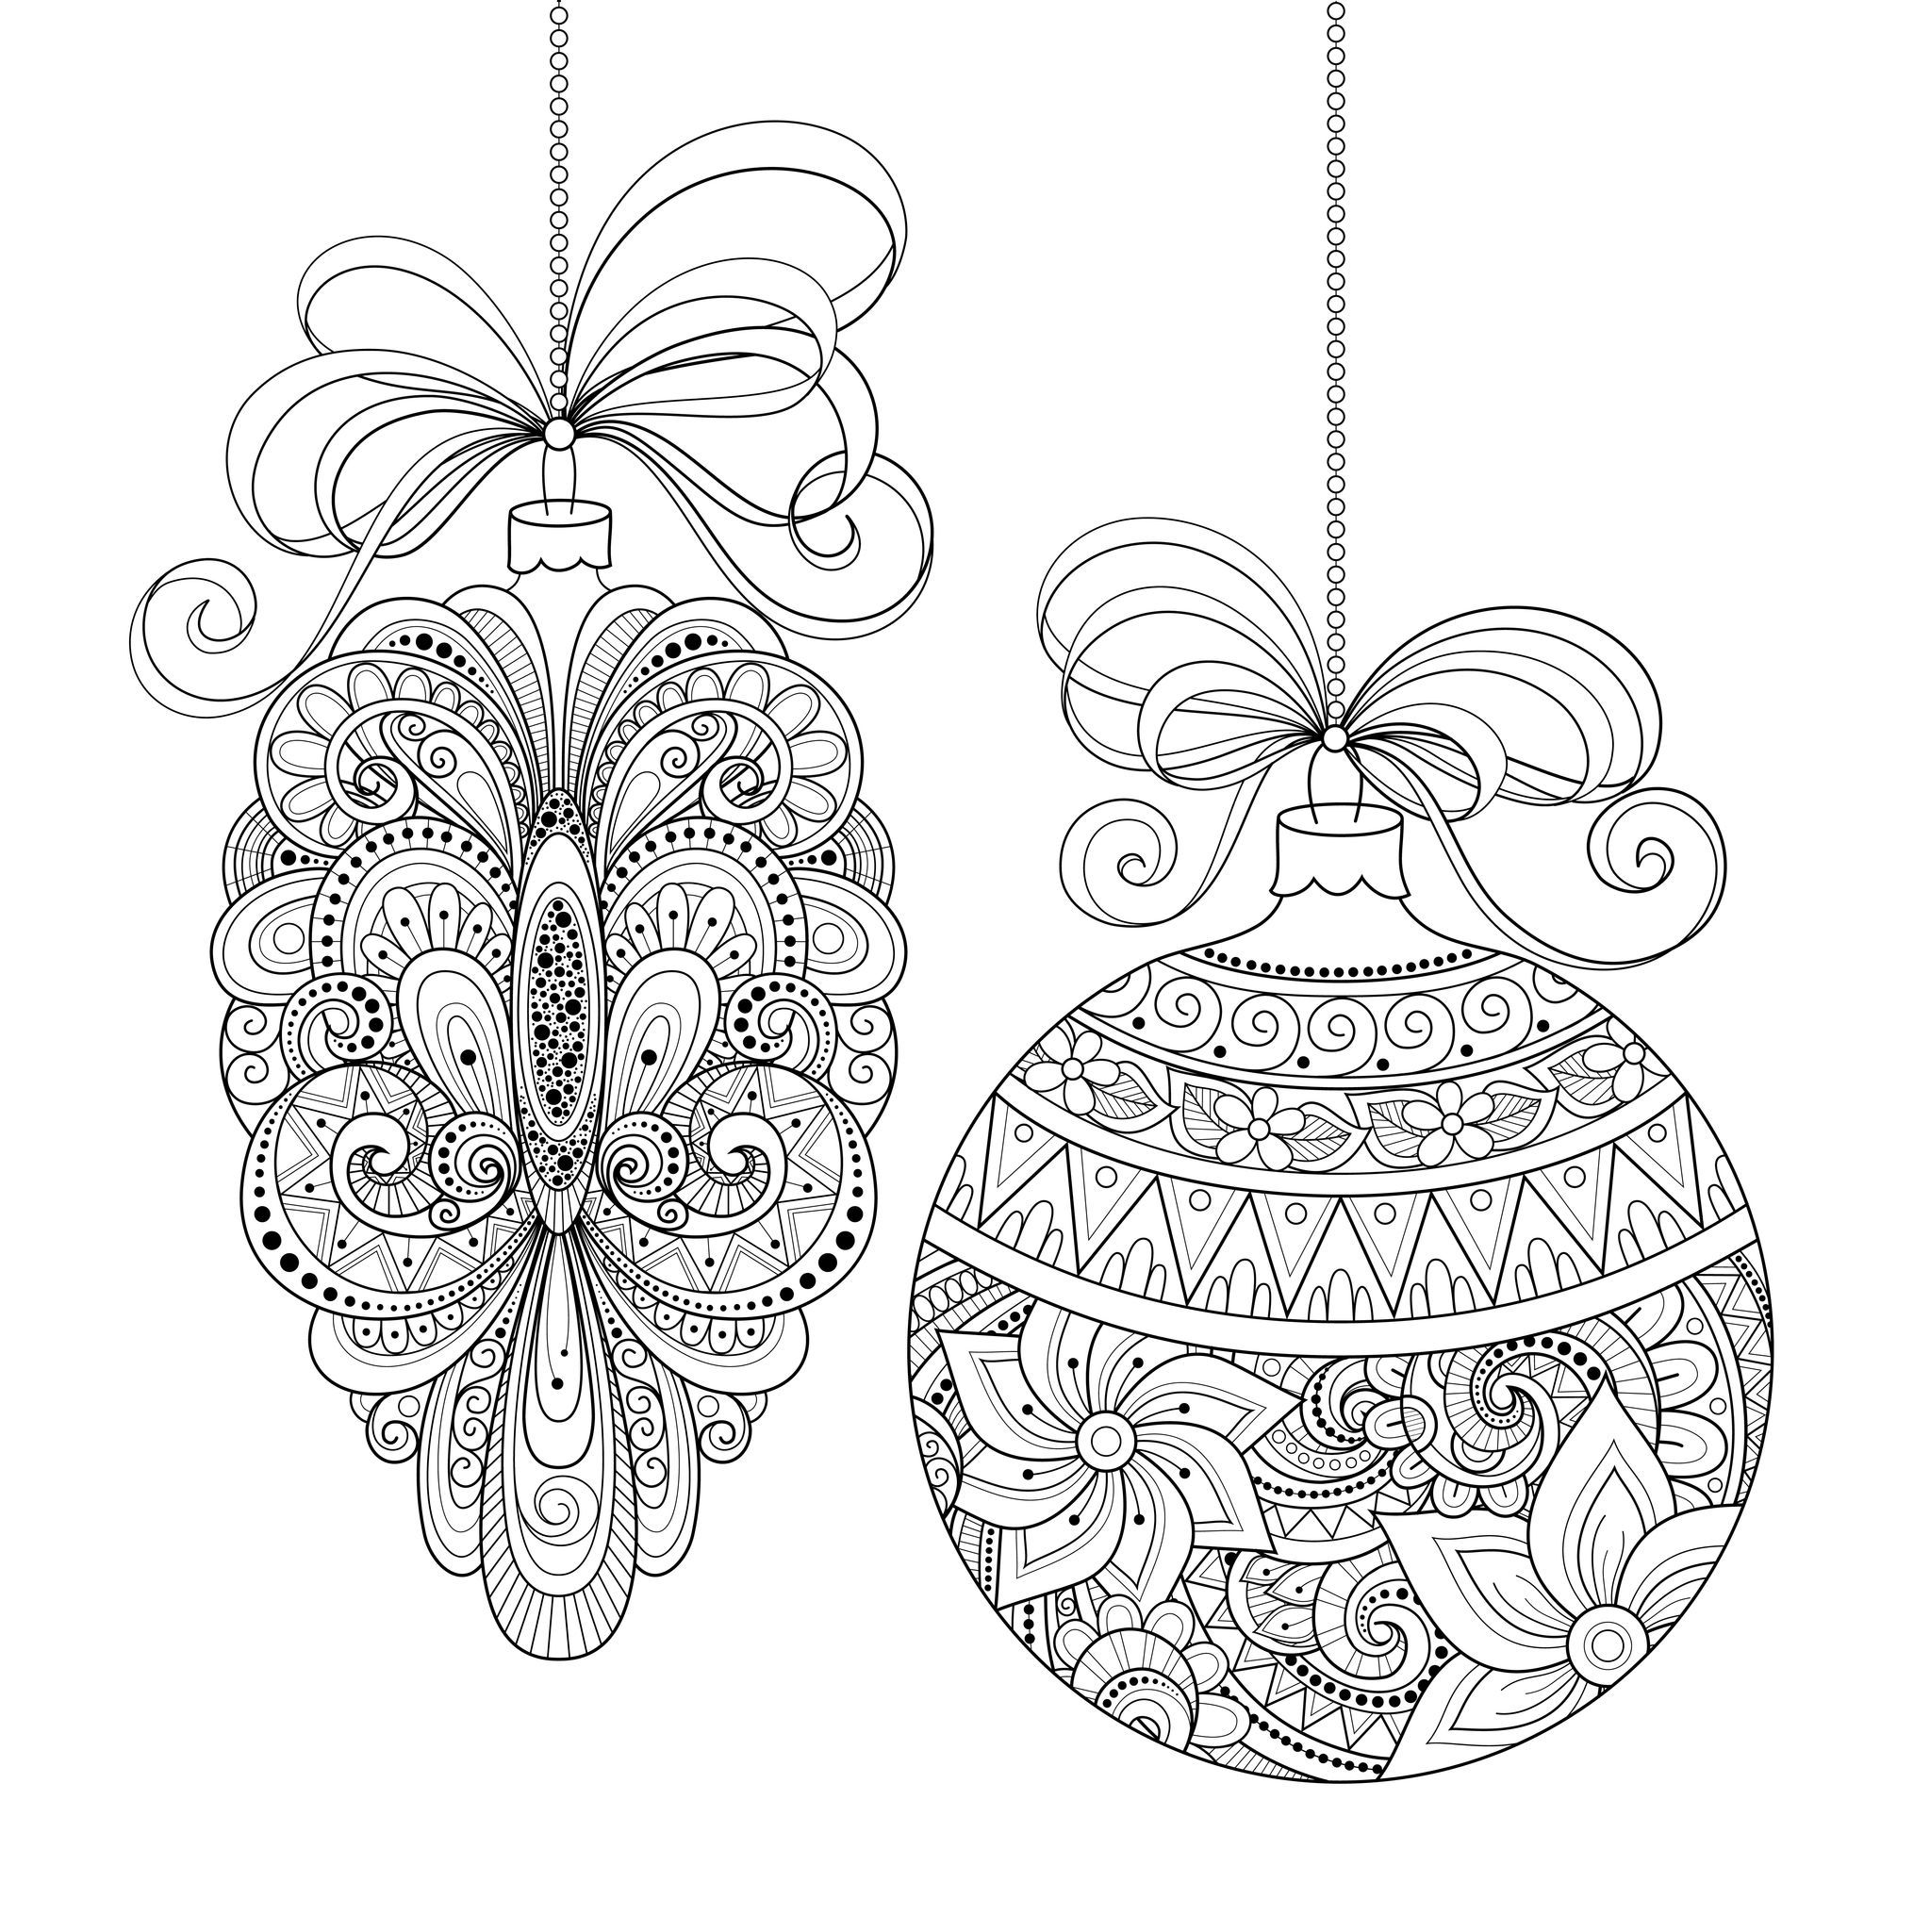 Coloring sheet for christmas - Christmas Ornaments Use This Coloring Page To Make Your Own Greeting Cards